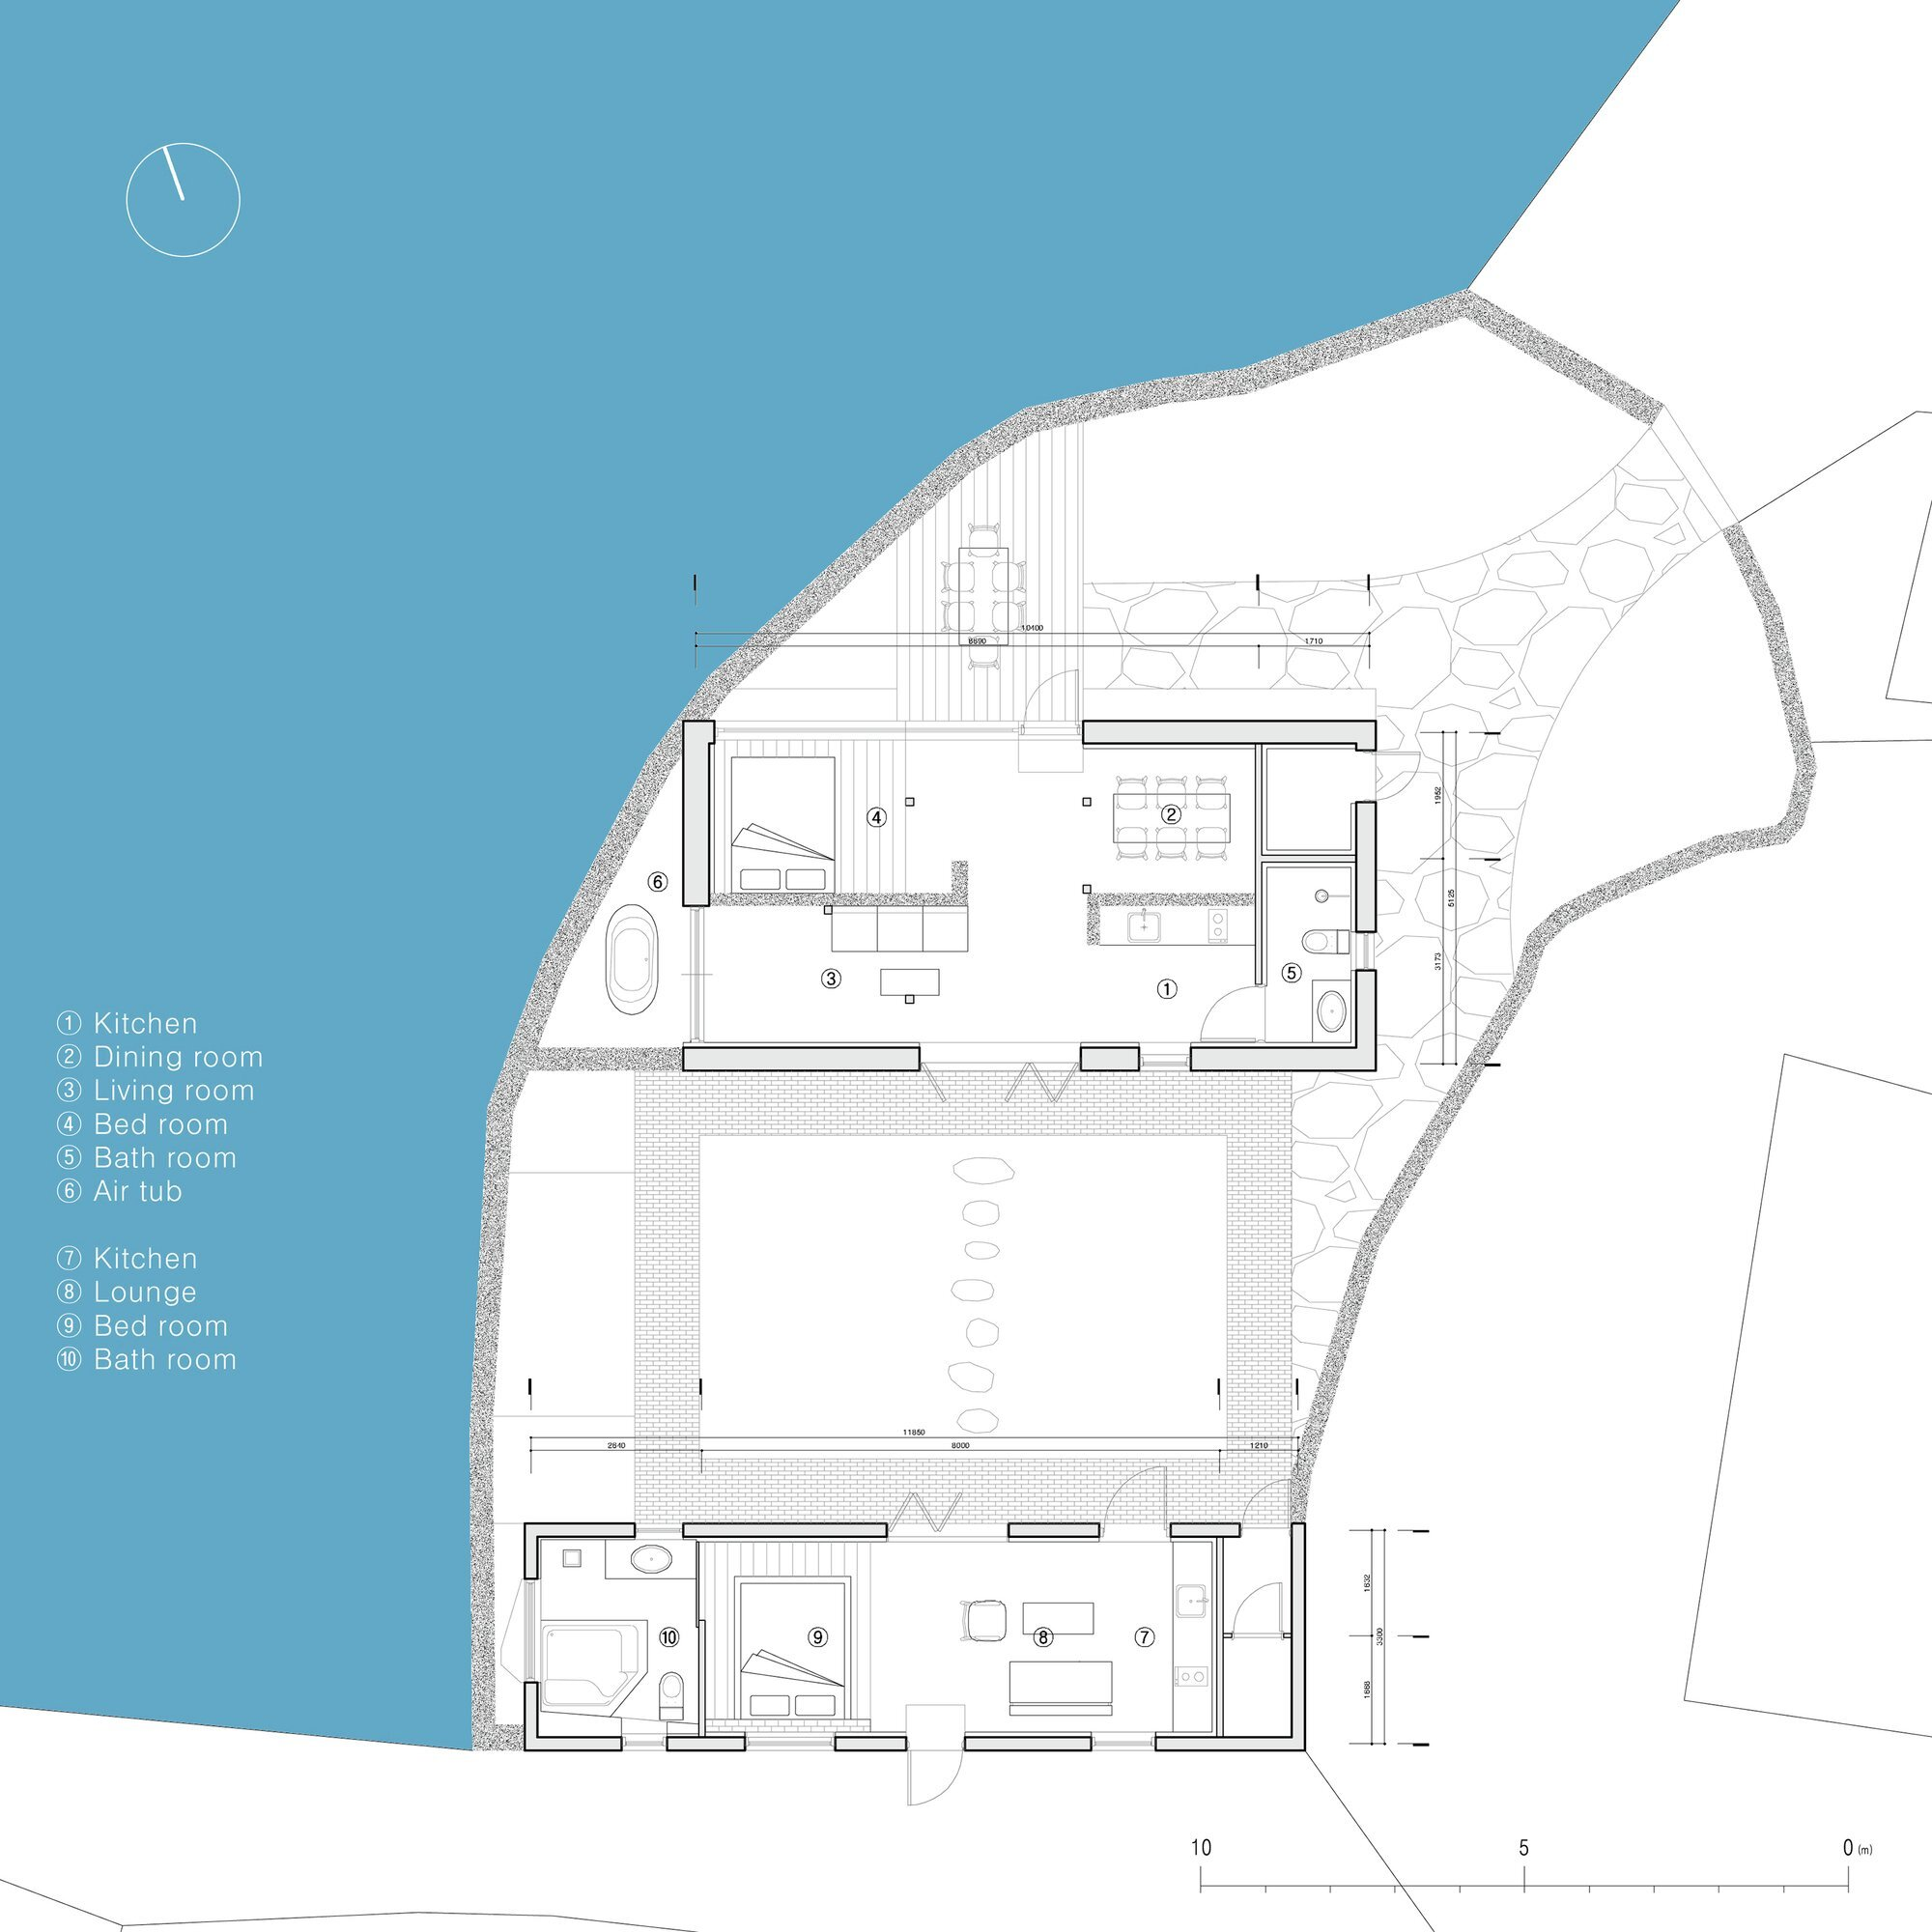 Blind Whale - Z_Lab - South Korea - Floor Plan - Humble Homes